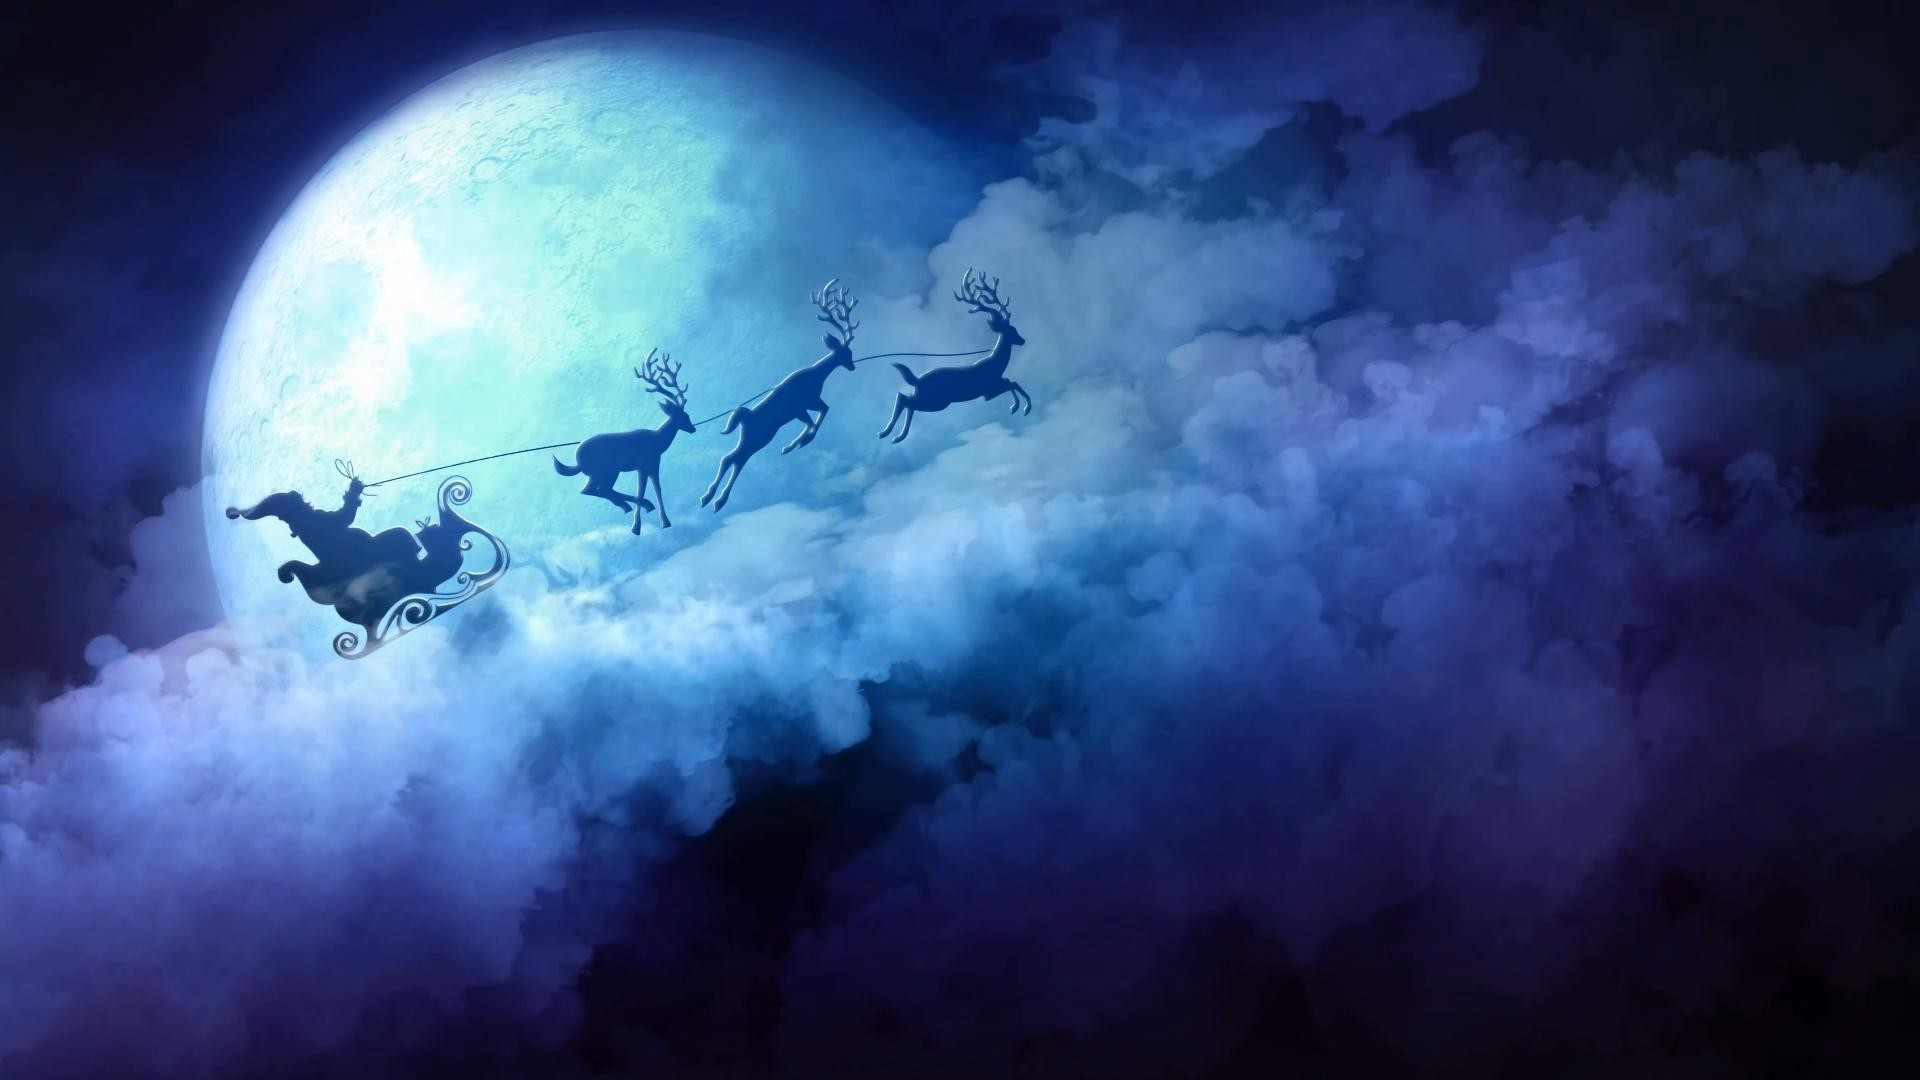 Cute Wallpapers For Phones Animated Christmas Wallpaper And Screensavers 60 Images